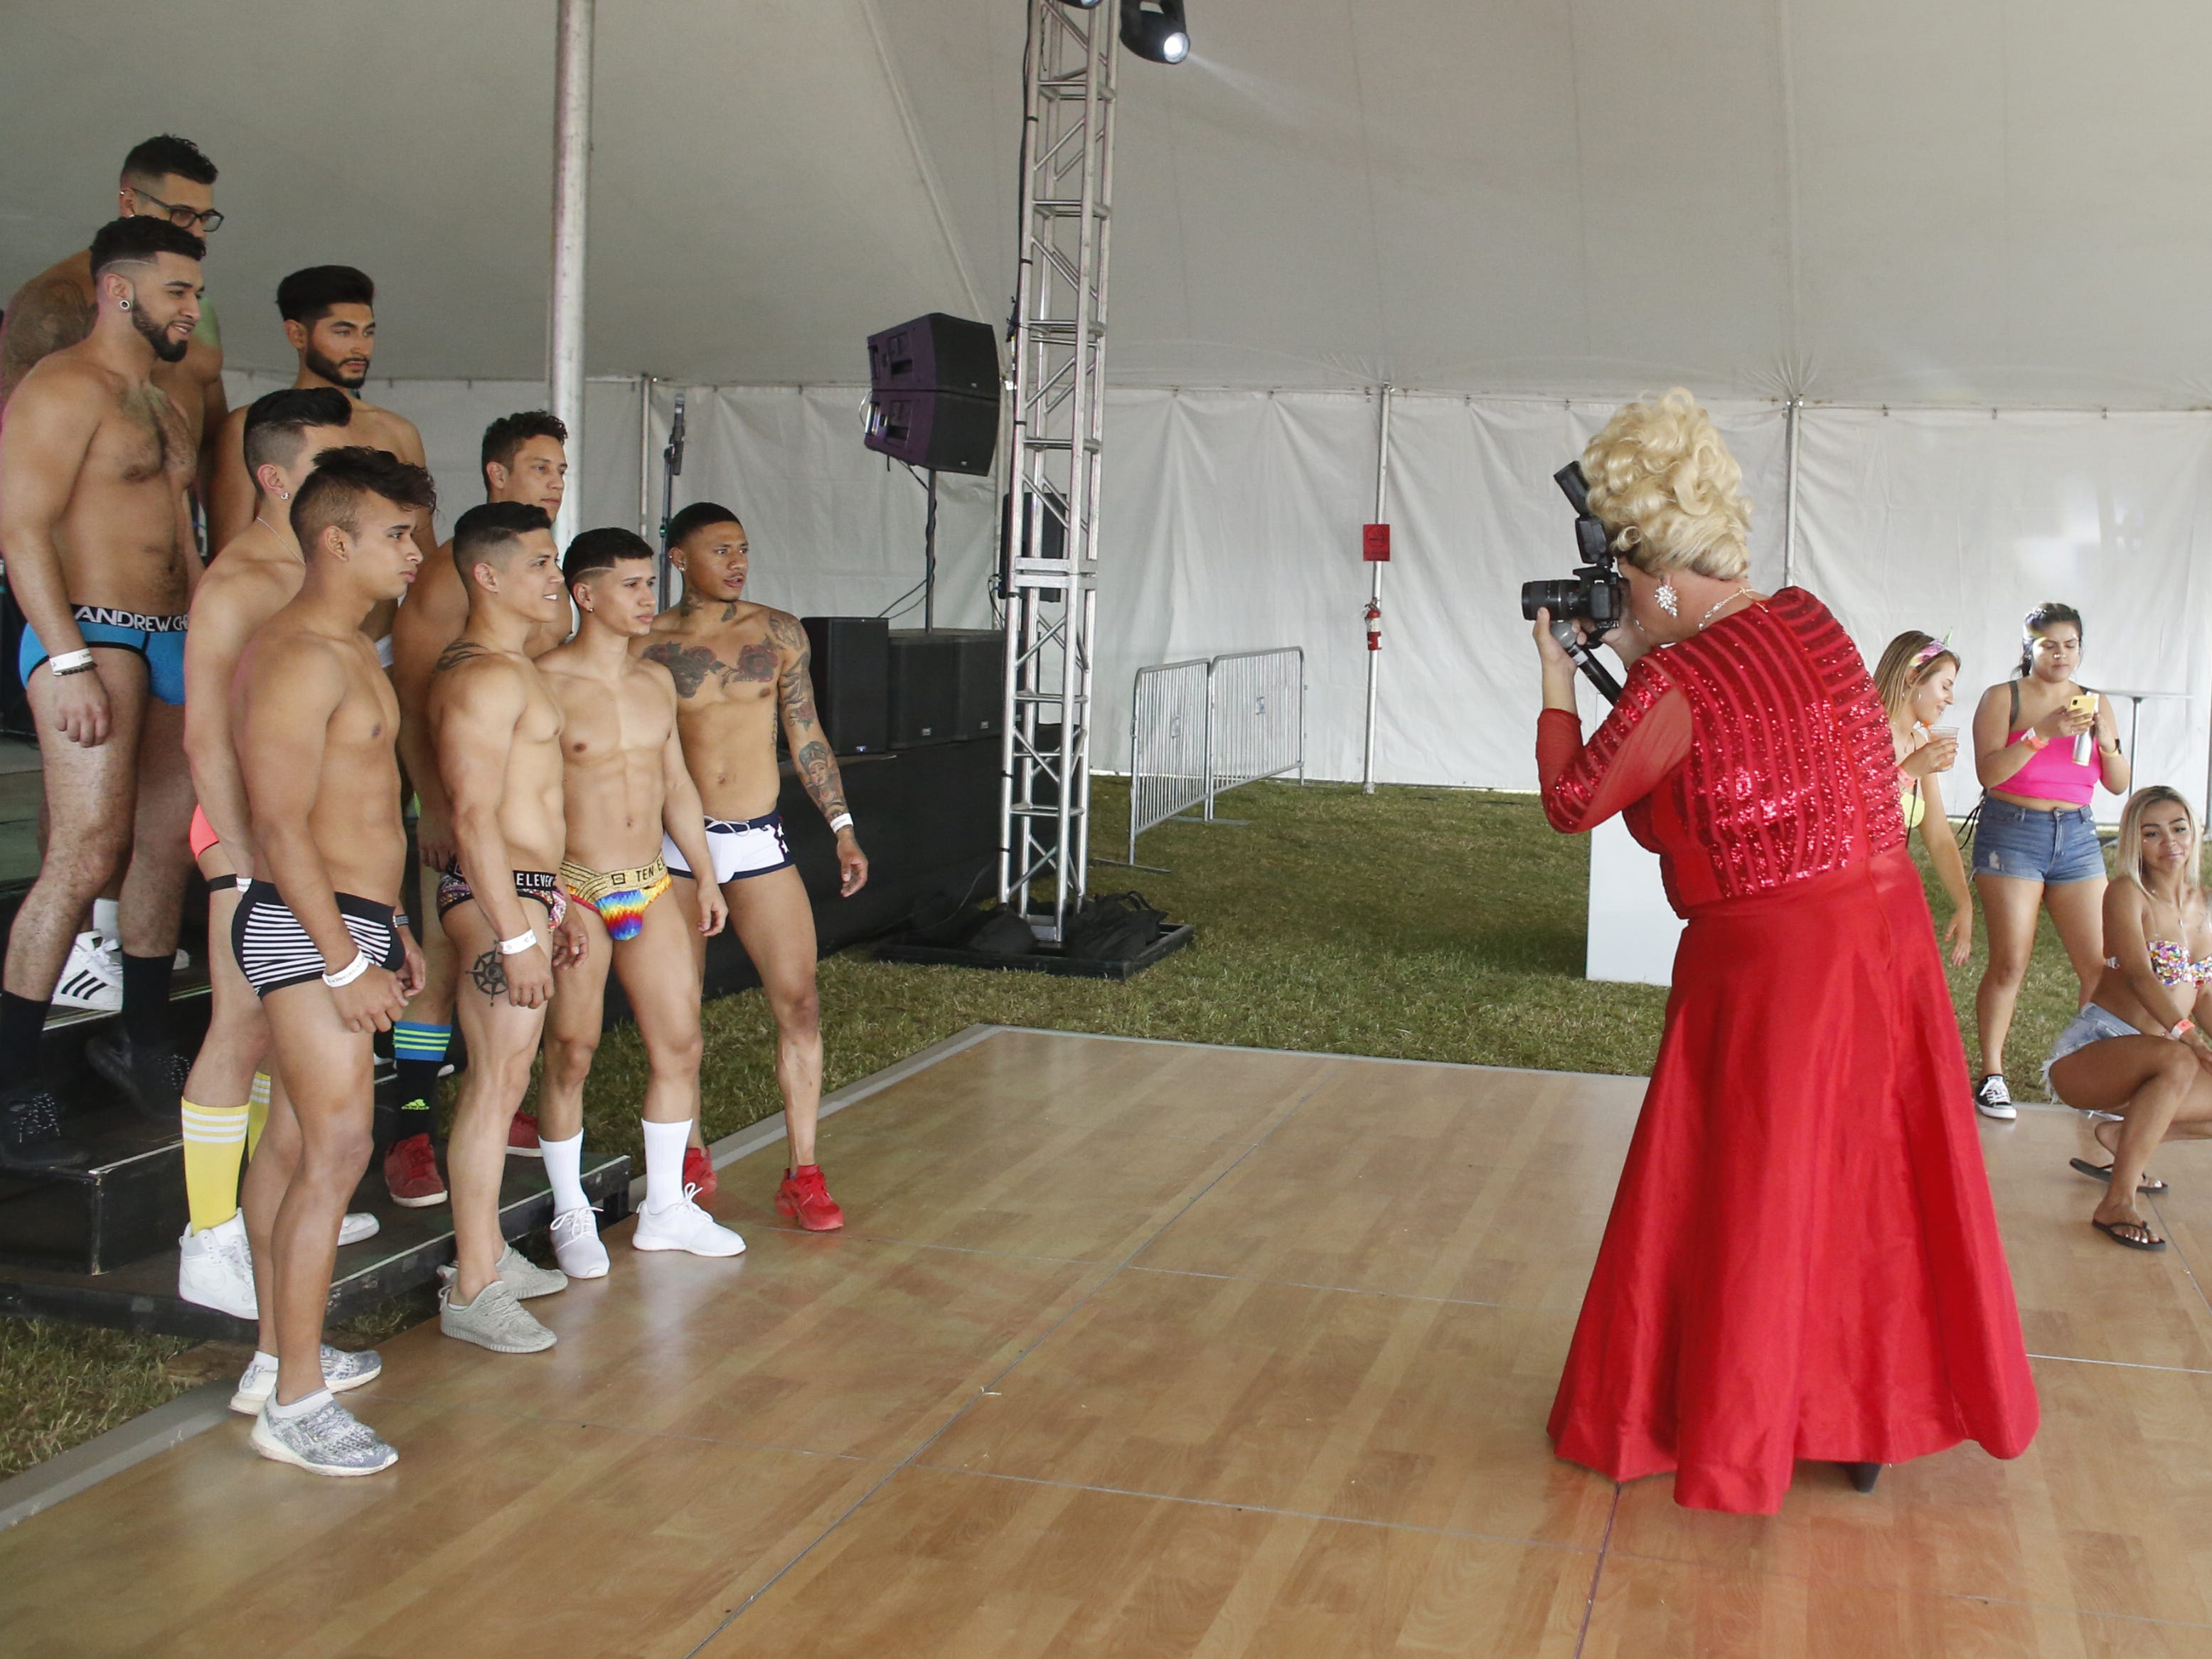 Models take to the dance floor for a picture during Phoenix Pride at Steele Indian School Park on April 6, 2019.